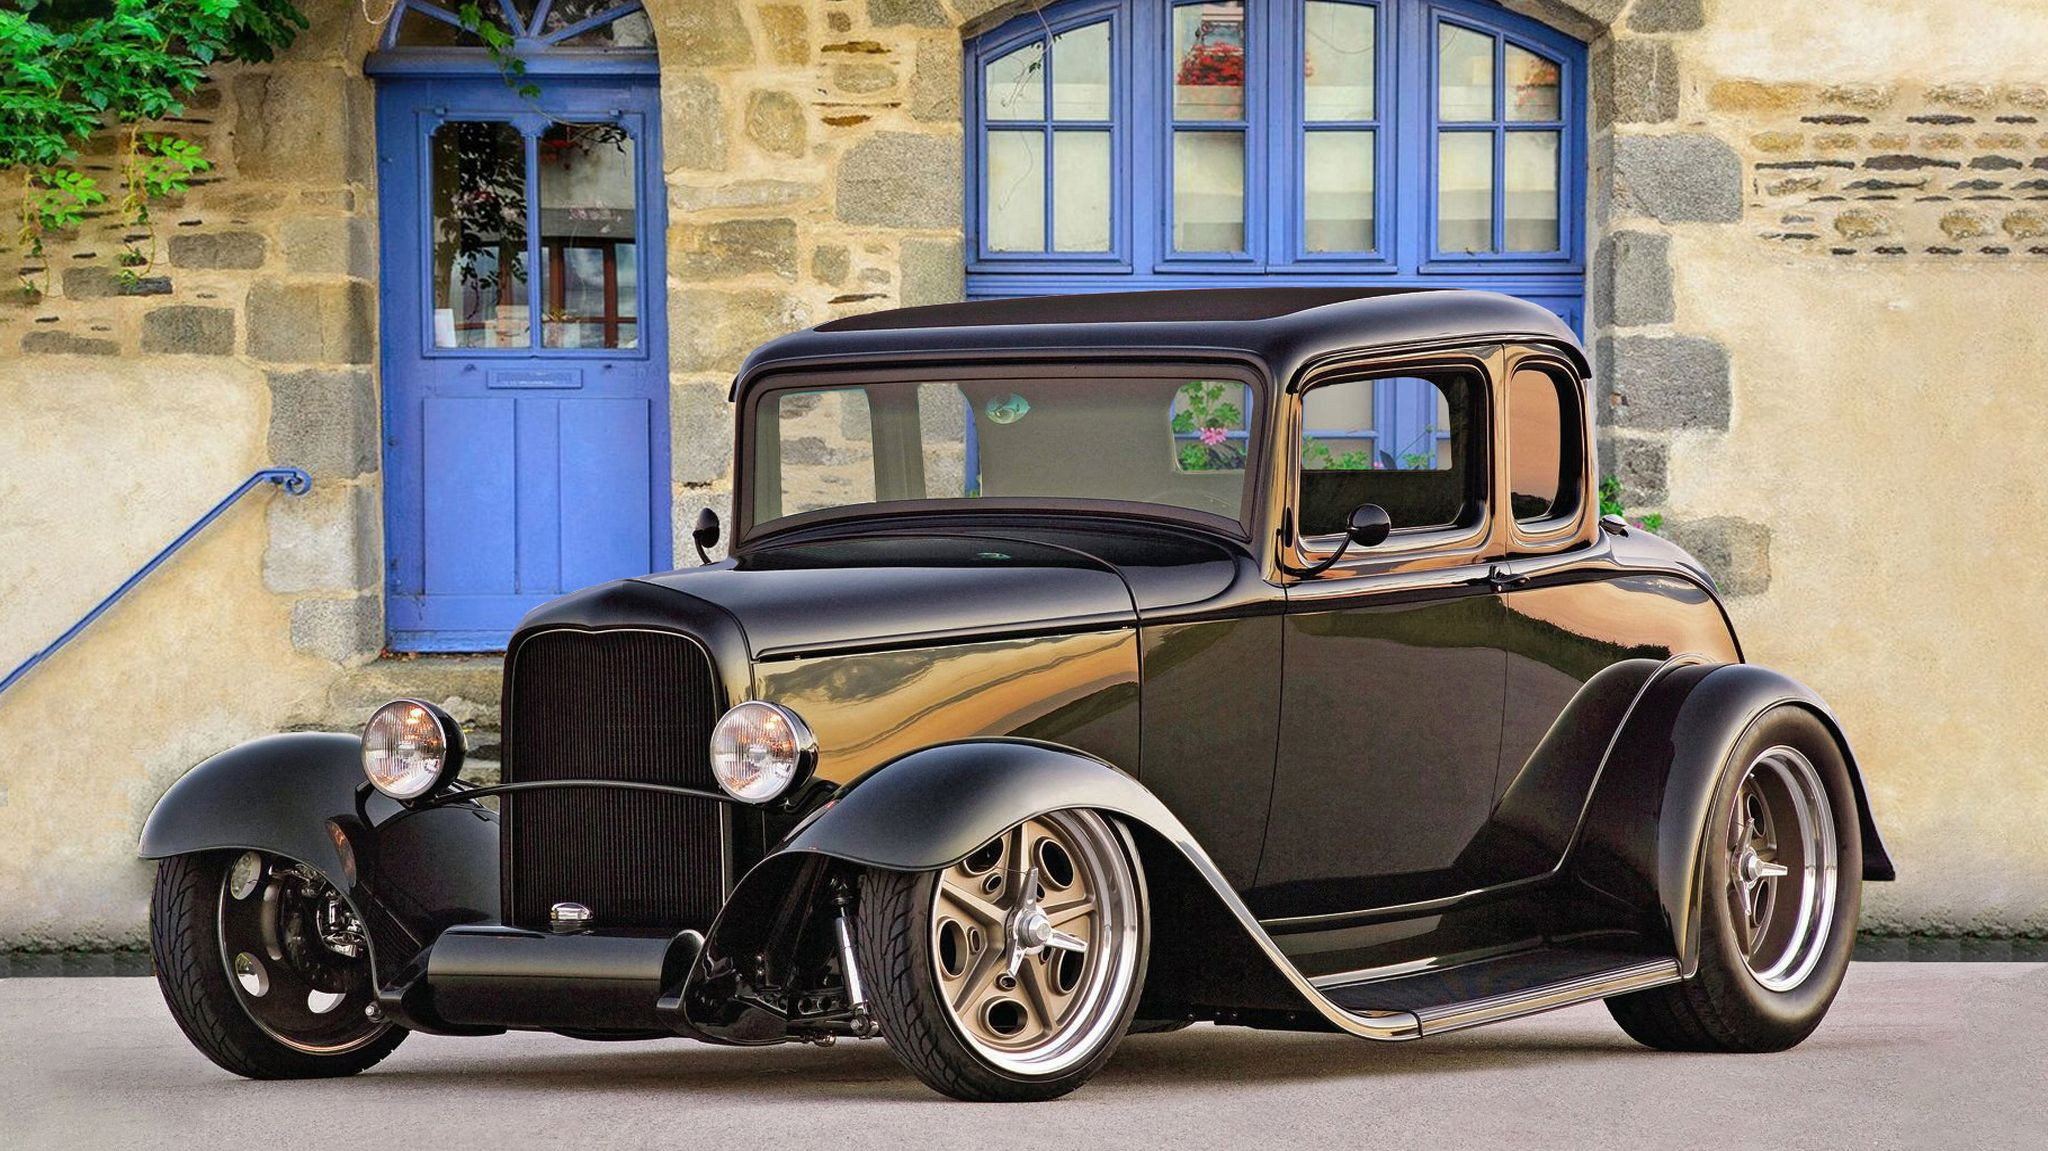 1932 Ford 5 Window Coupe Blk High Definition Wallpaper 1932 Ford 5 Window Coupe 1932 Ford Coupe